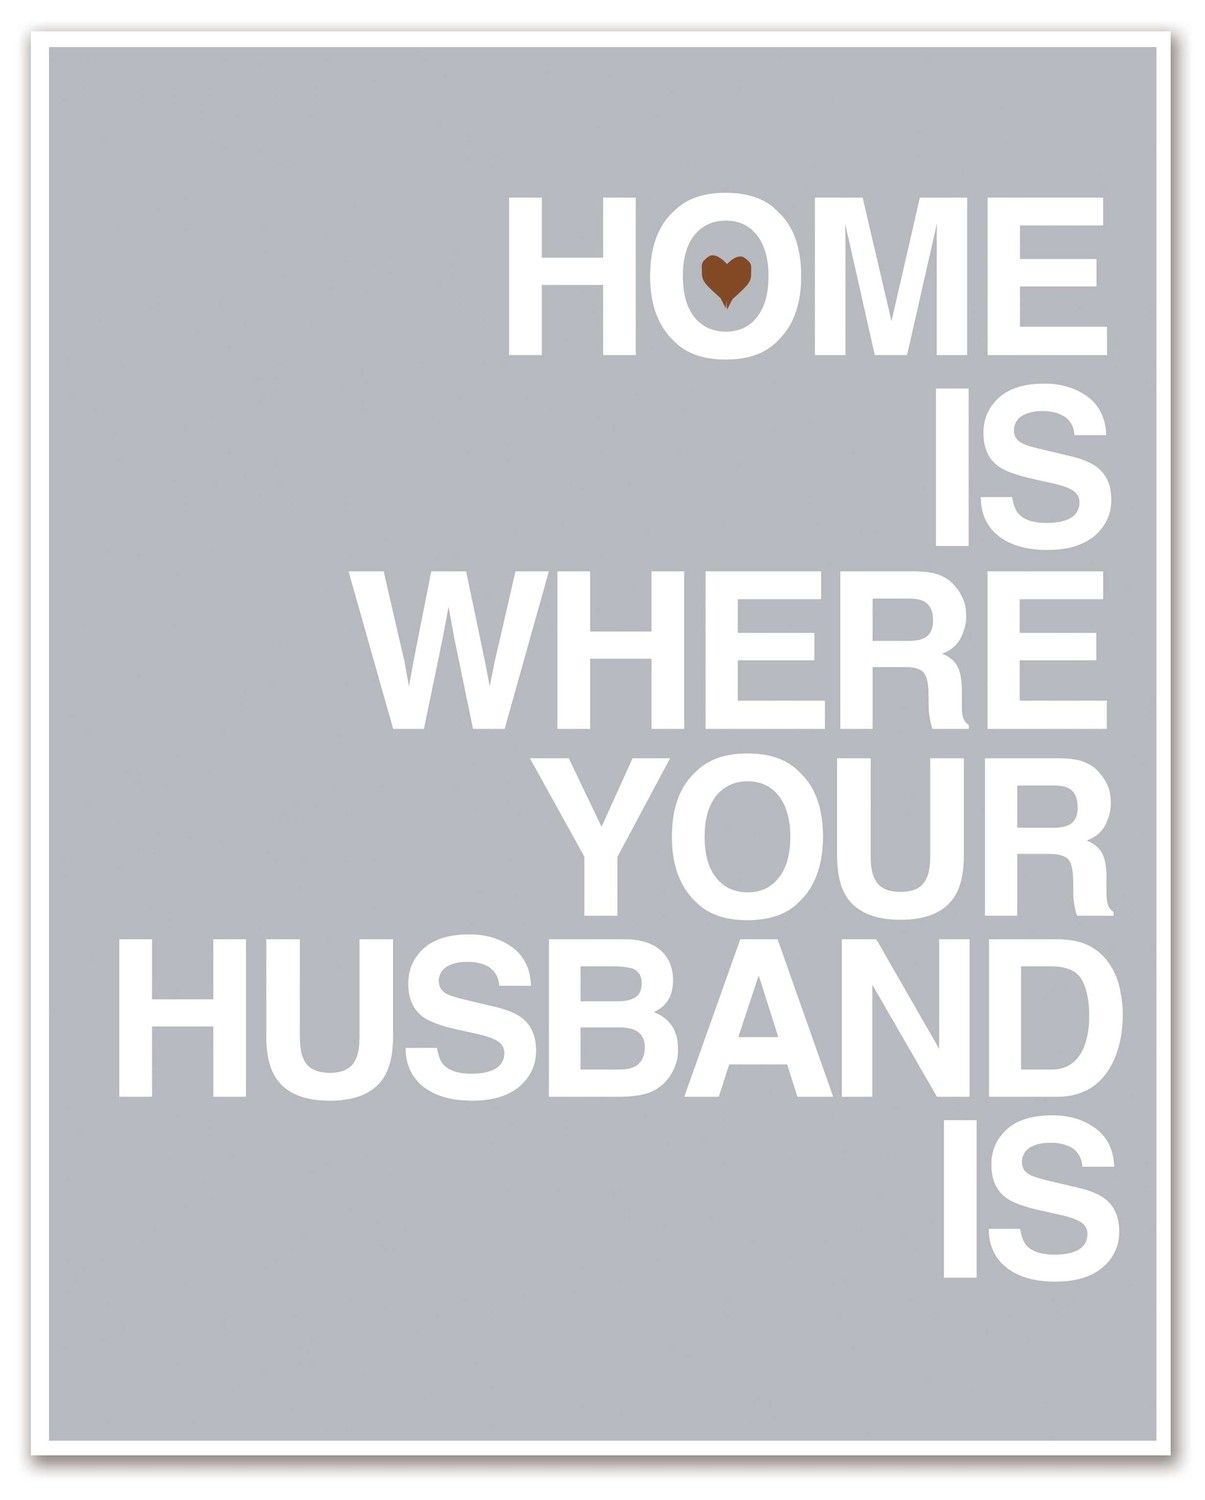 Love Quotes To Your Husband Home Is Where Your Husband Is Sayings & Quotes  Pinterest  So